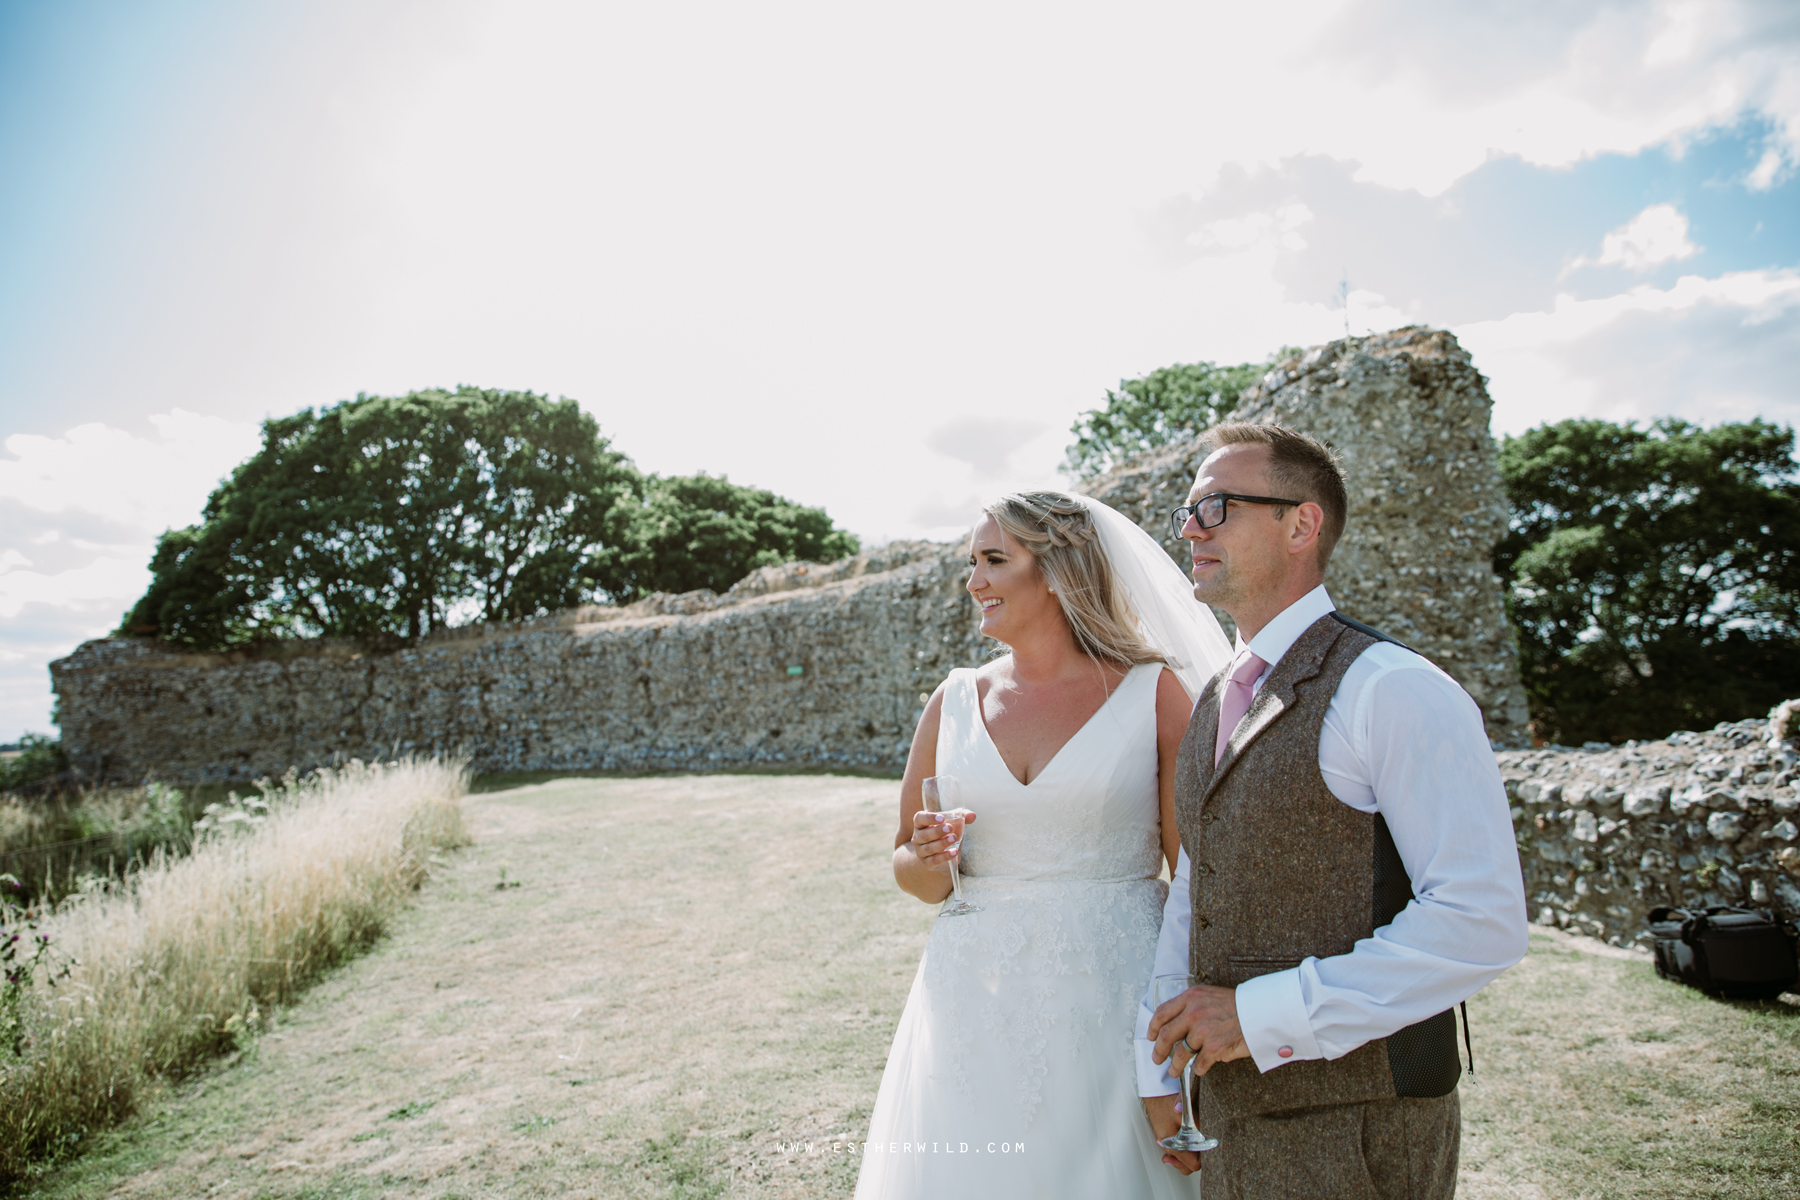 Swaffham_Wedding_Castle_Acre_Norfolk_Esther_Wild_Photographer_Wedding_Photography_3R8A1433.jpg